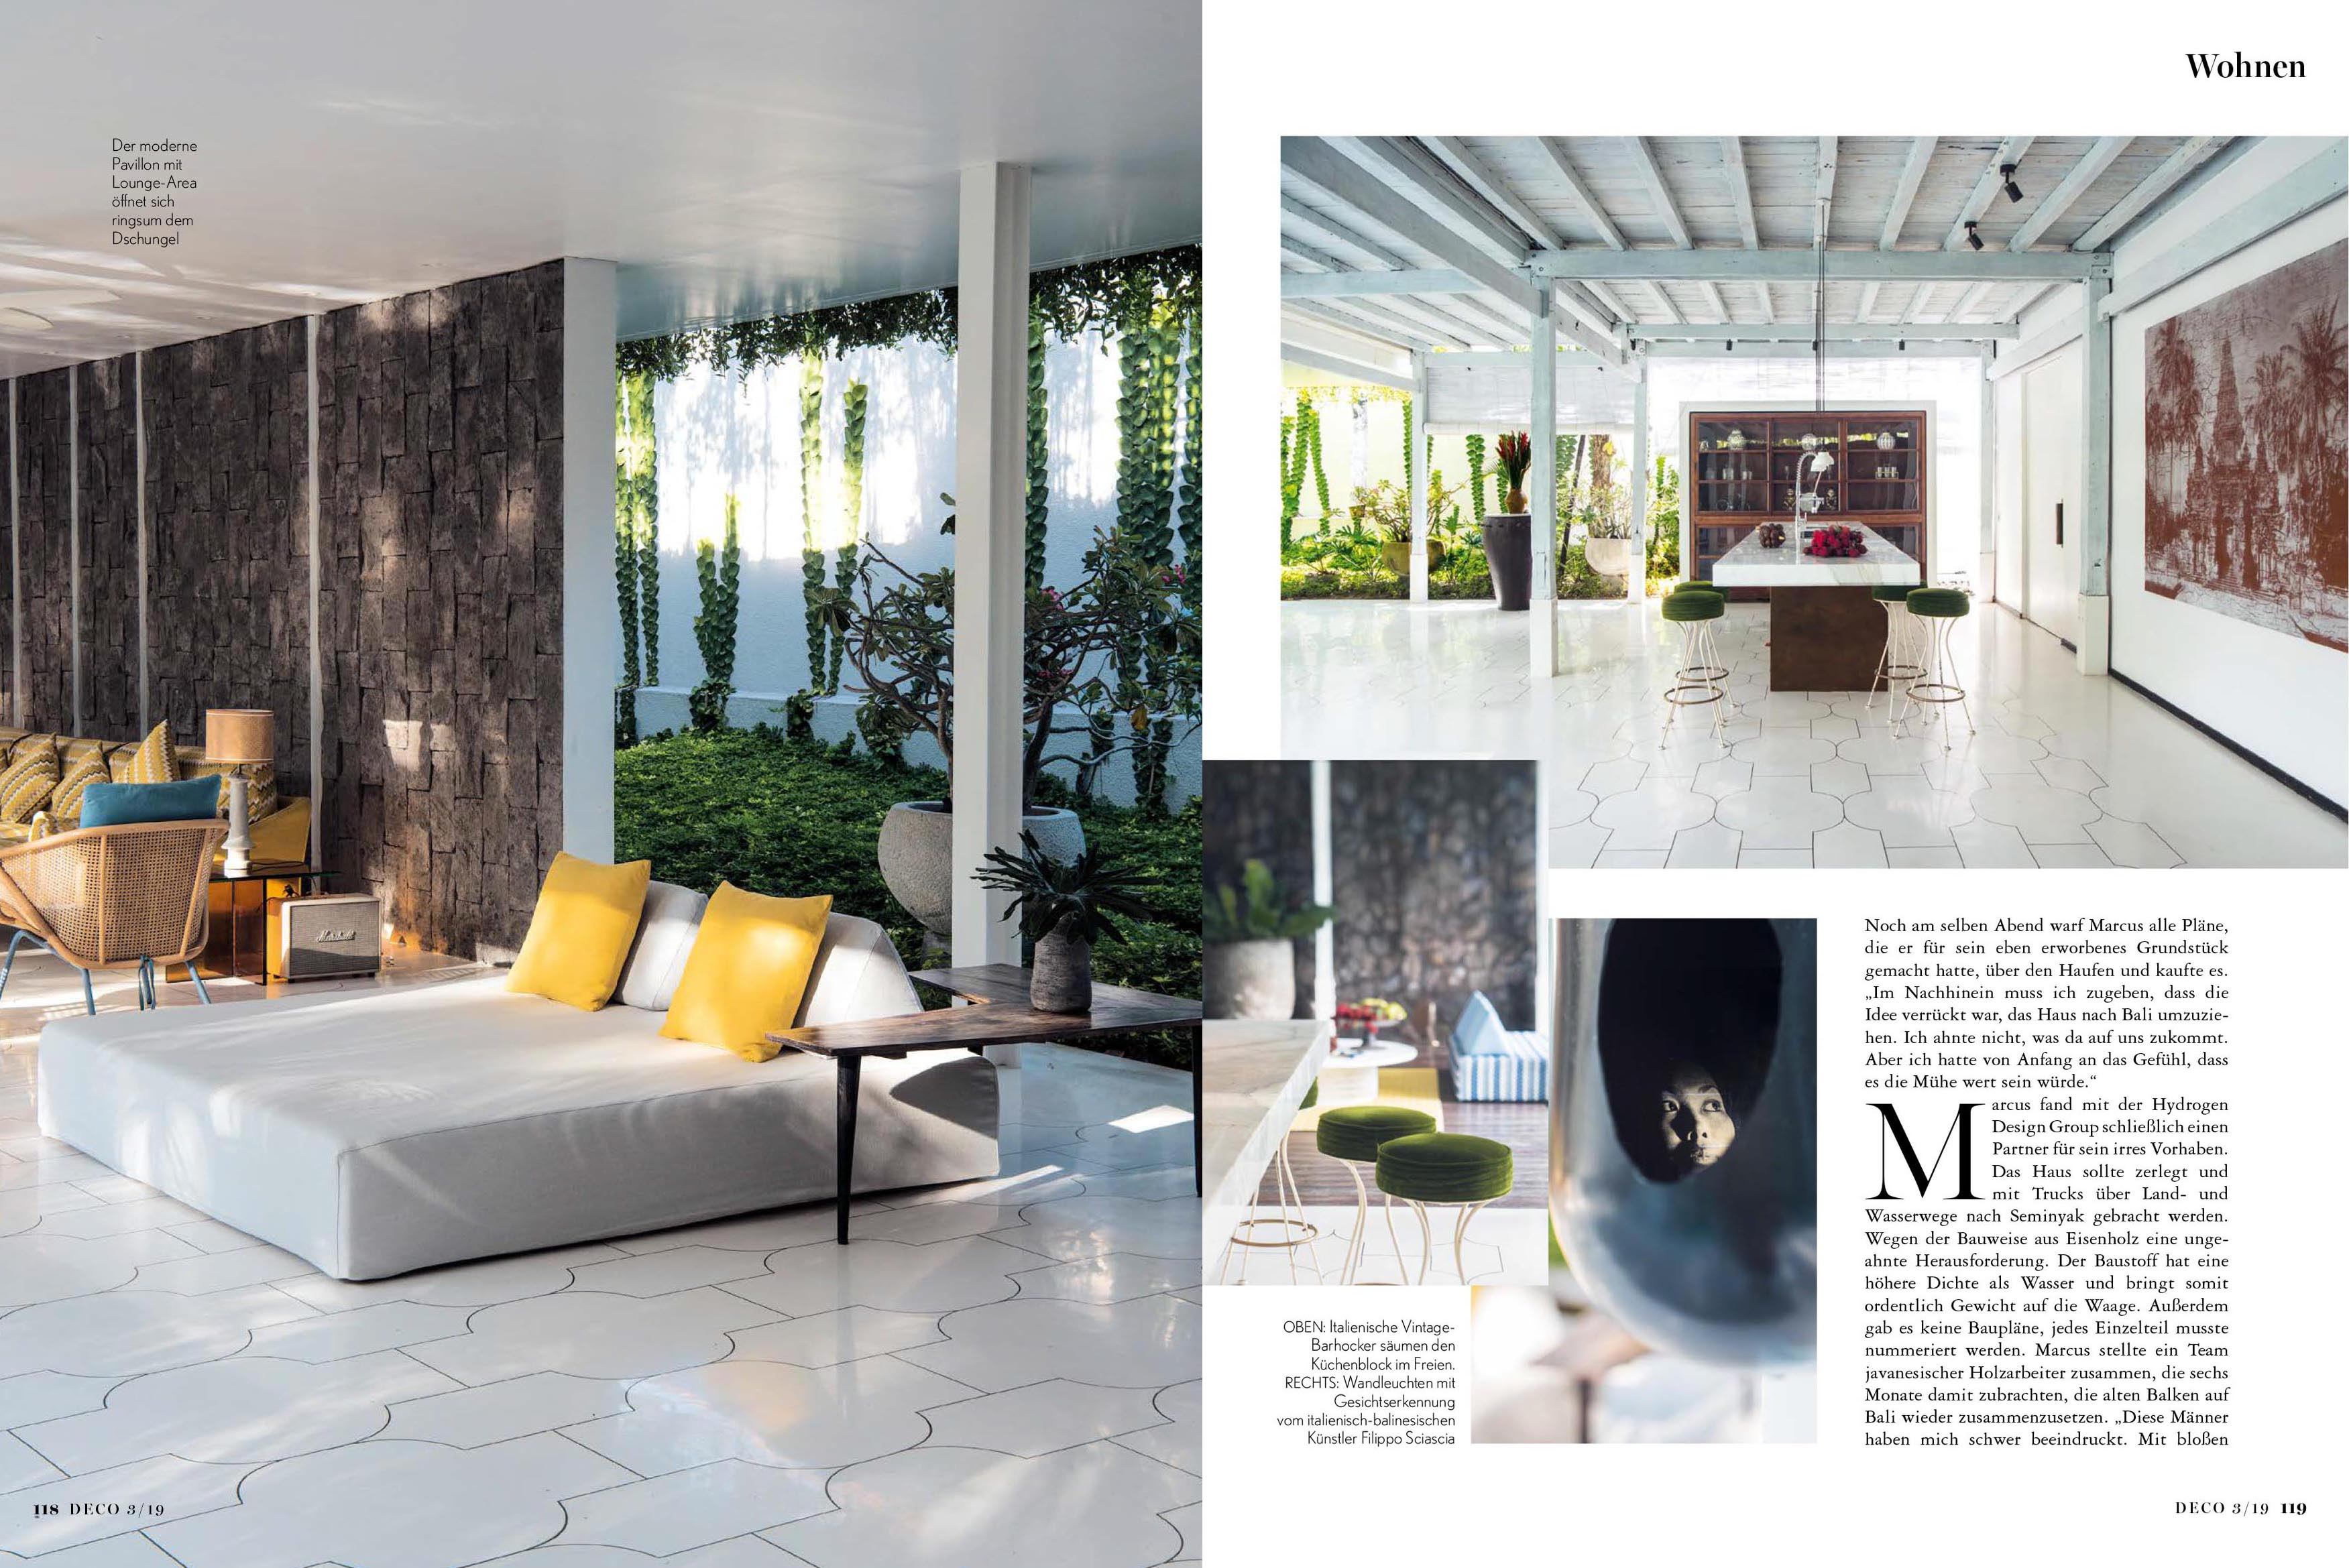 Deco Home June July August 2019